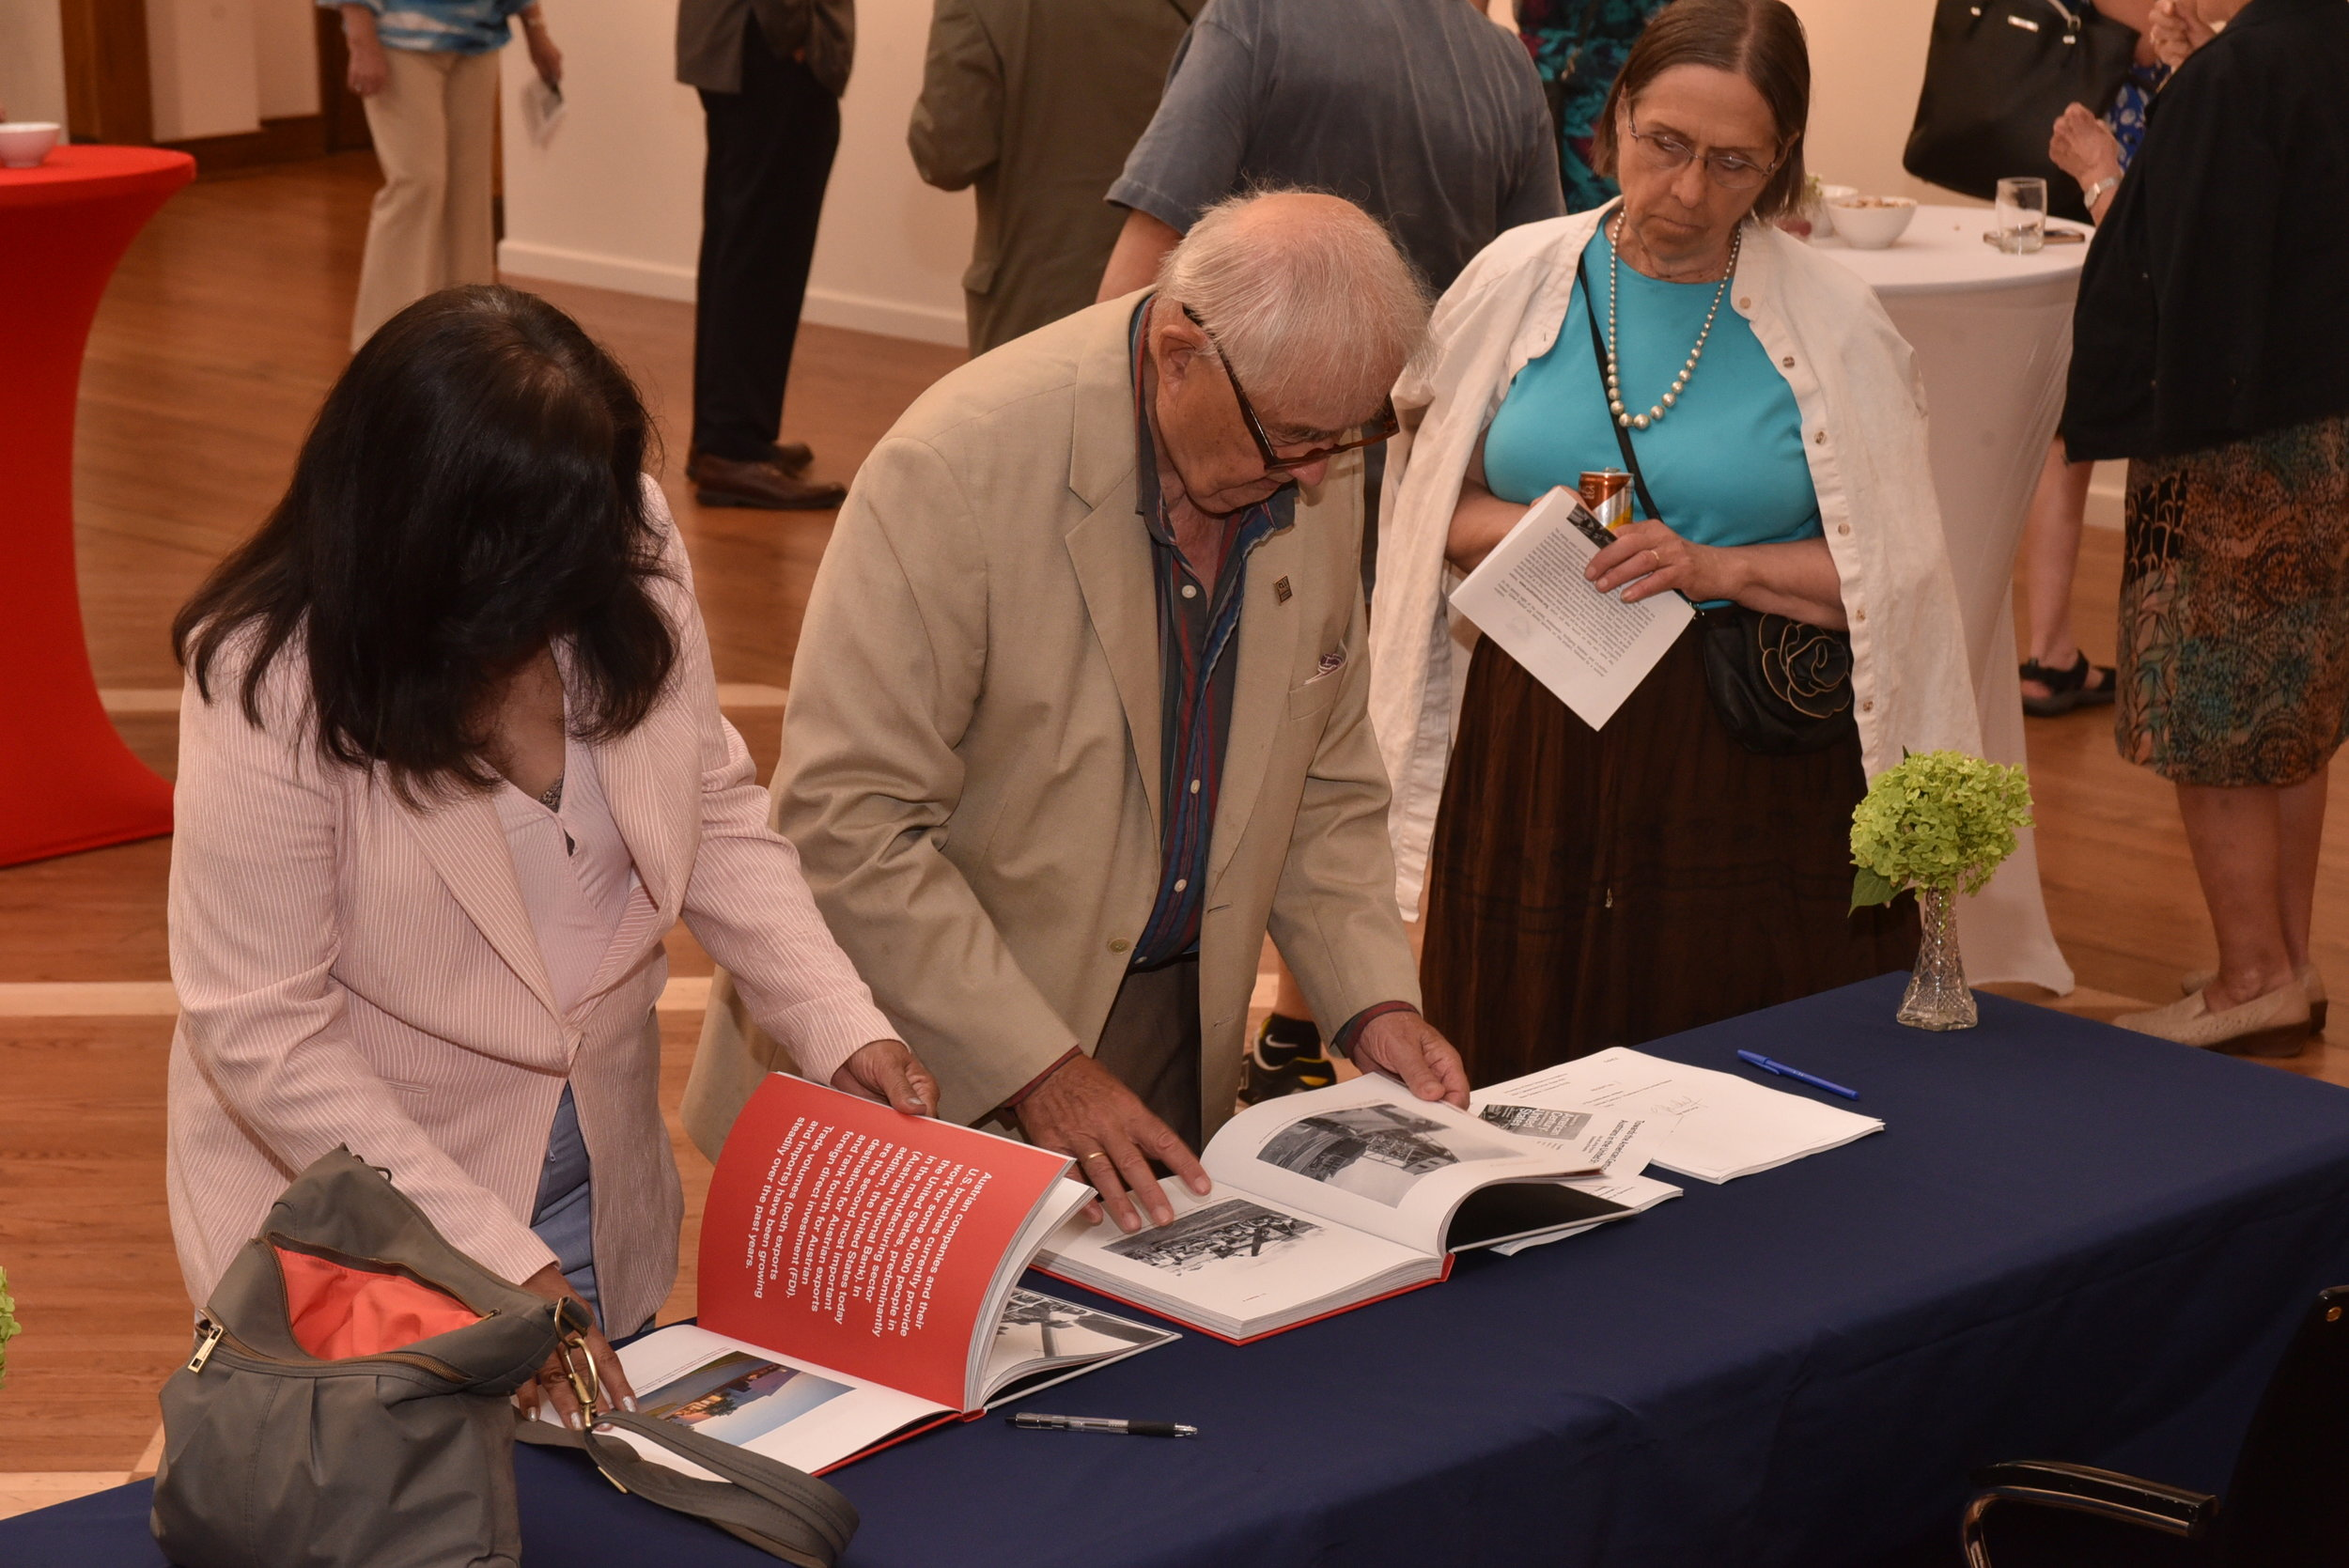 Guests view the book.   Photo: Peter Alunans